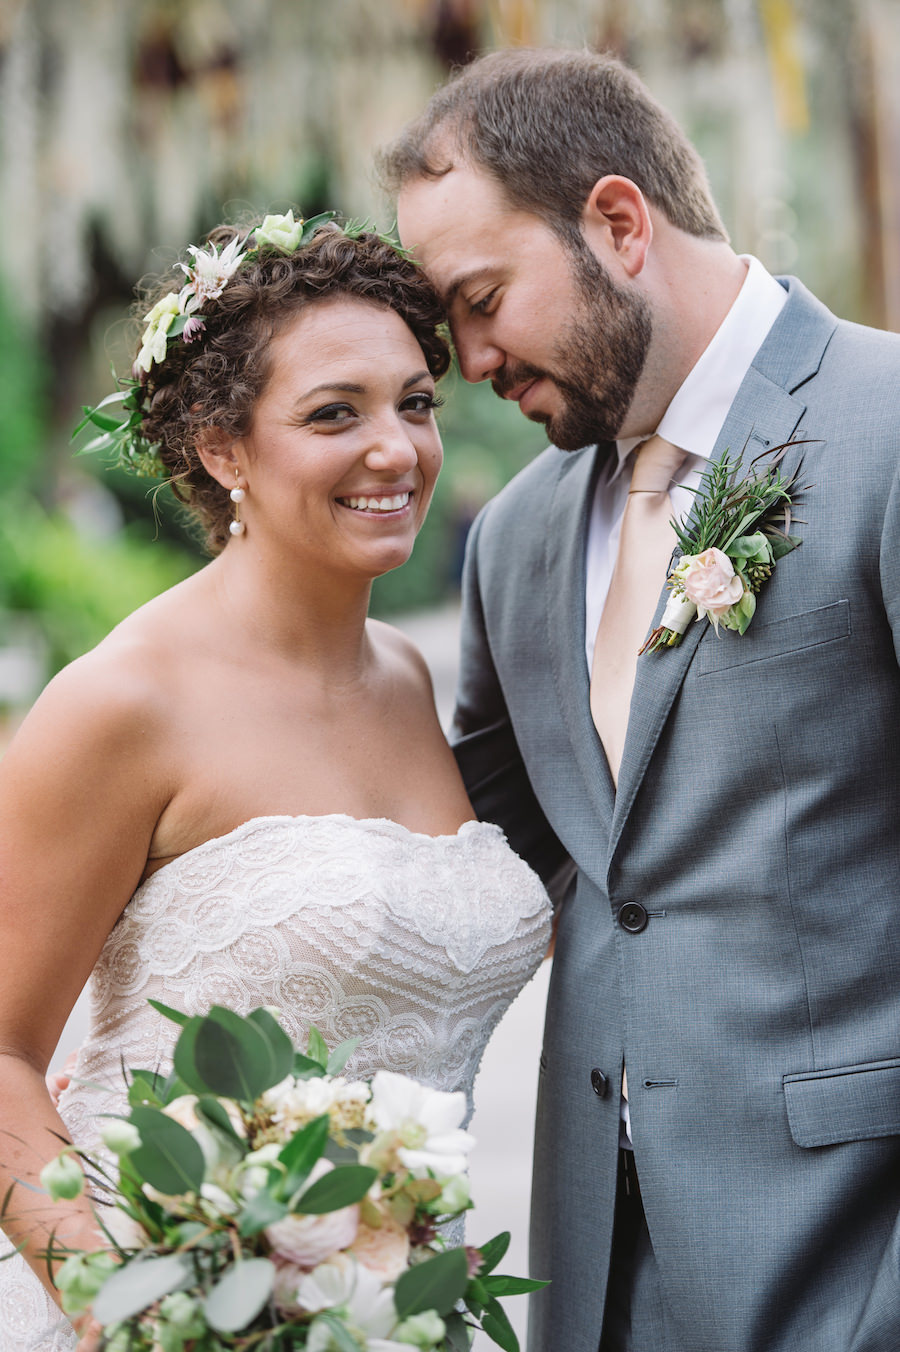 Nature Inspired Bride and Groom Outdoor Wedding Portrait with Blush and Champagne Wedding Bouquet with Greenery | Wedding Hair and Makeup Artist Michele Renee The Studio | Flowers by Andrea Layne Floral Design